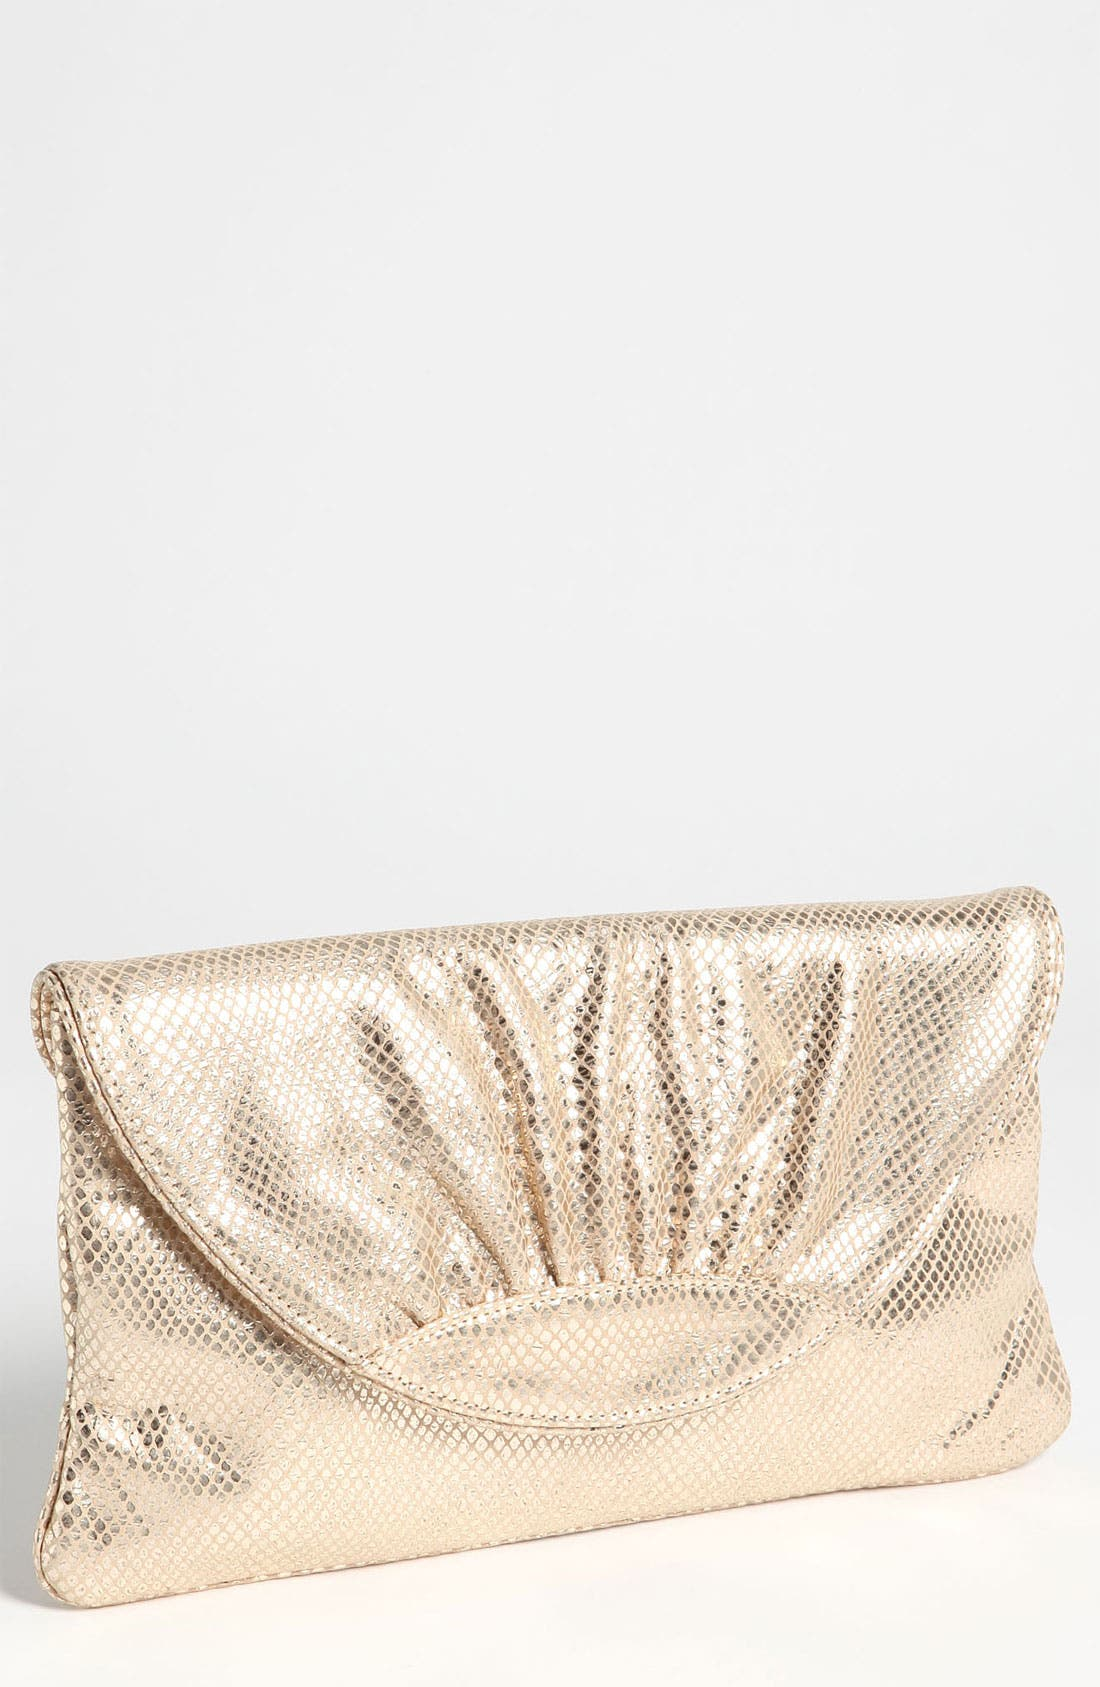 Alternate Image 1 Selected - Lauren Merkin 'Ava' Snake Embossed Clutch